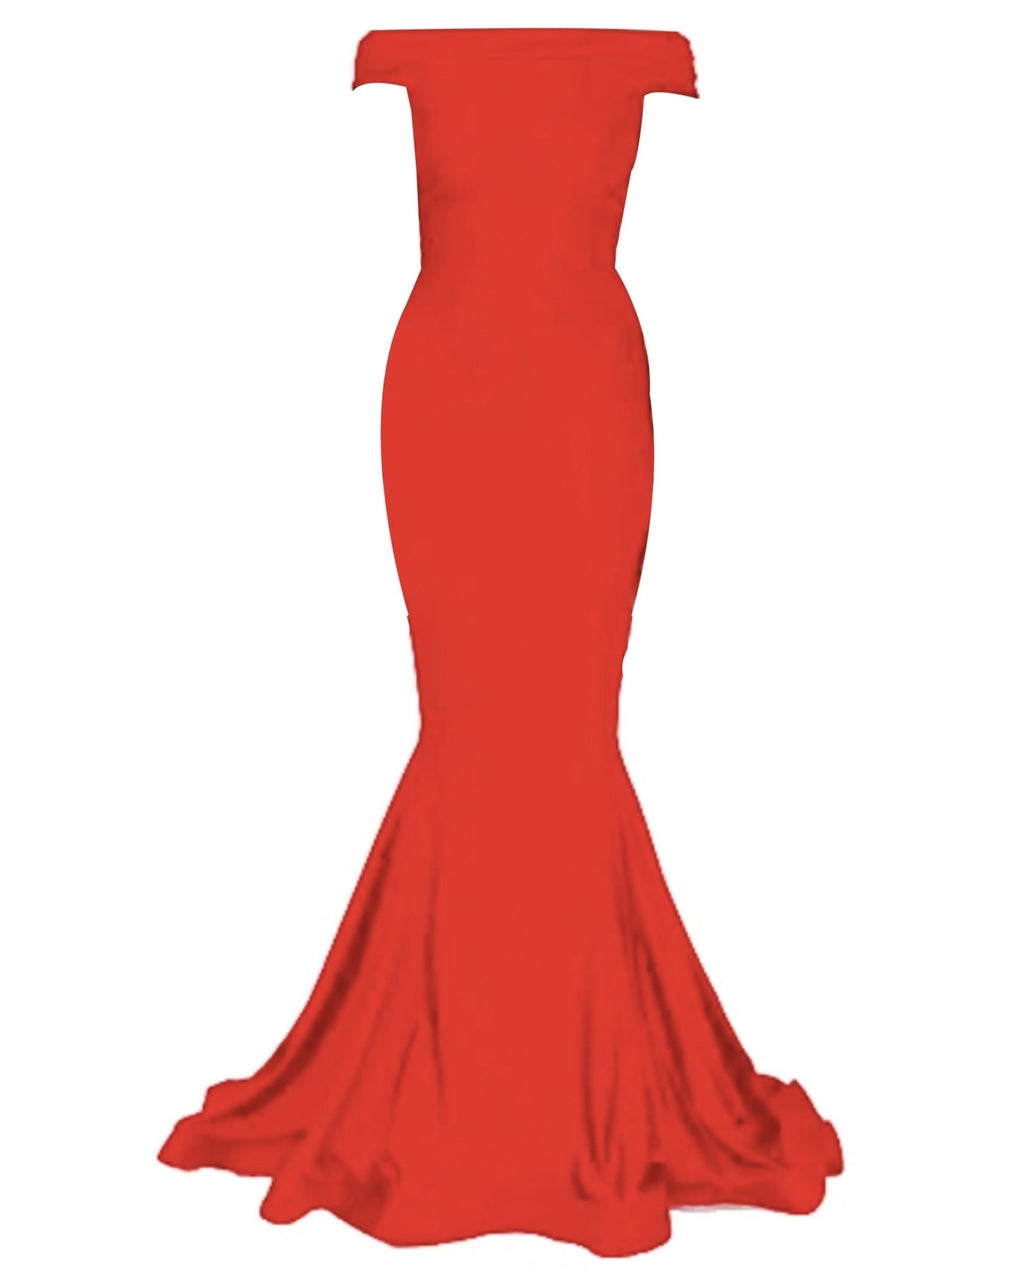 Off-Shoulder Jessica Gown - Red